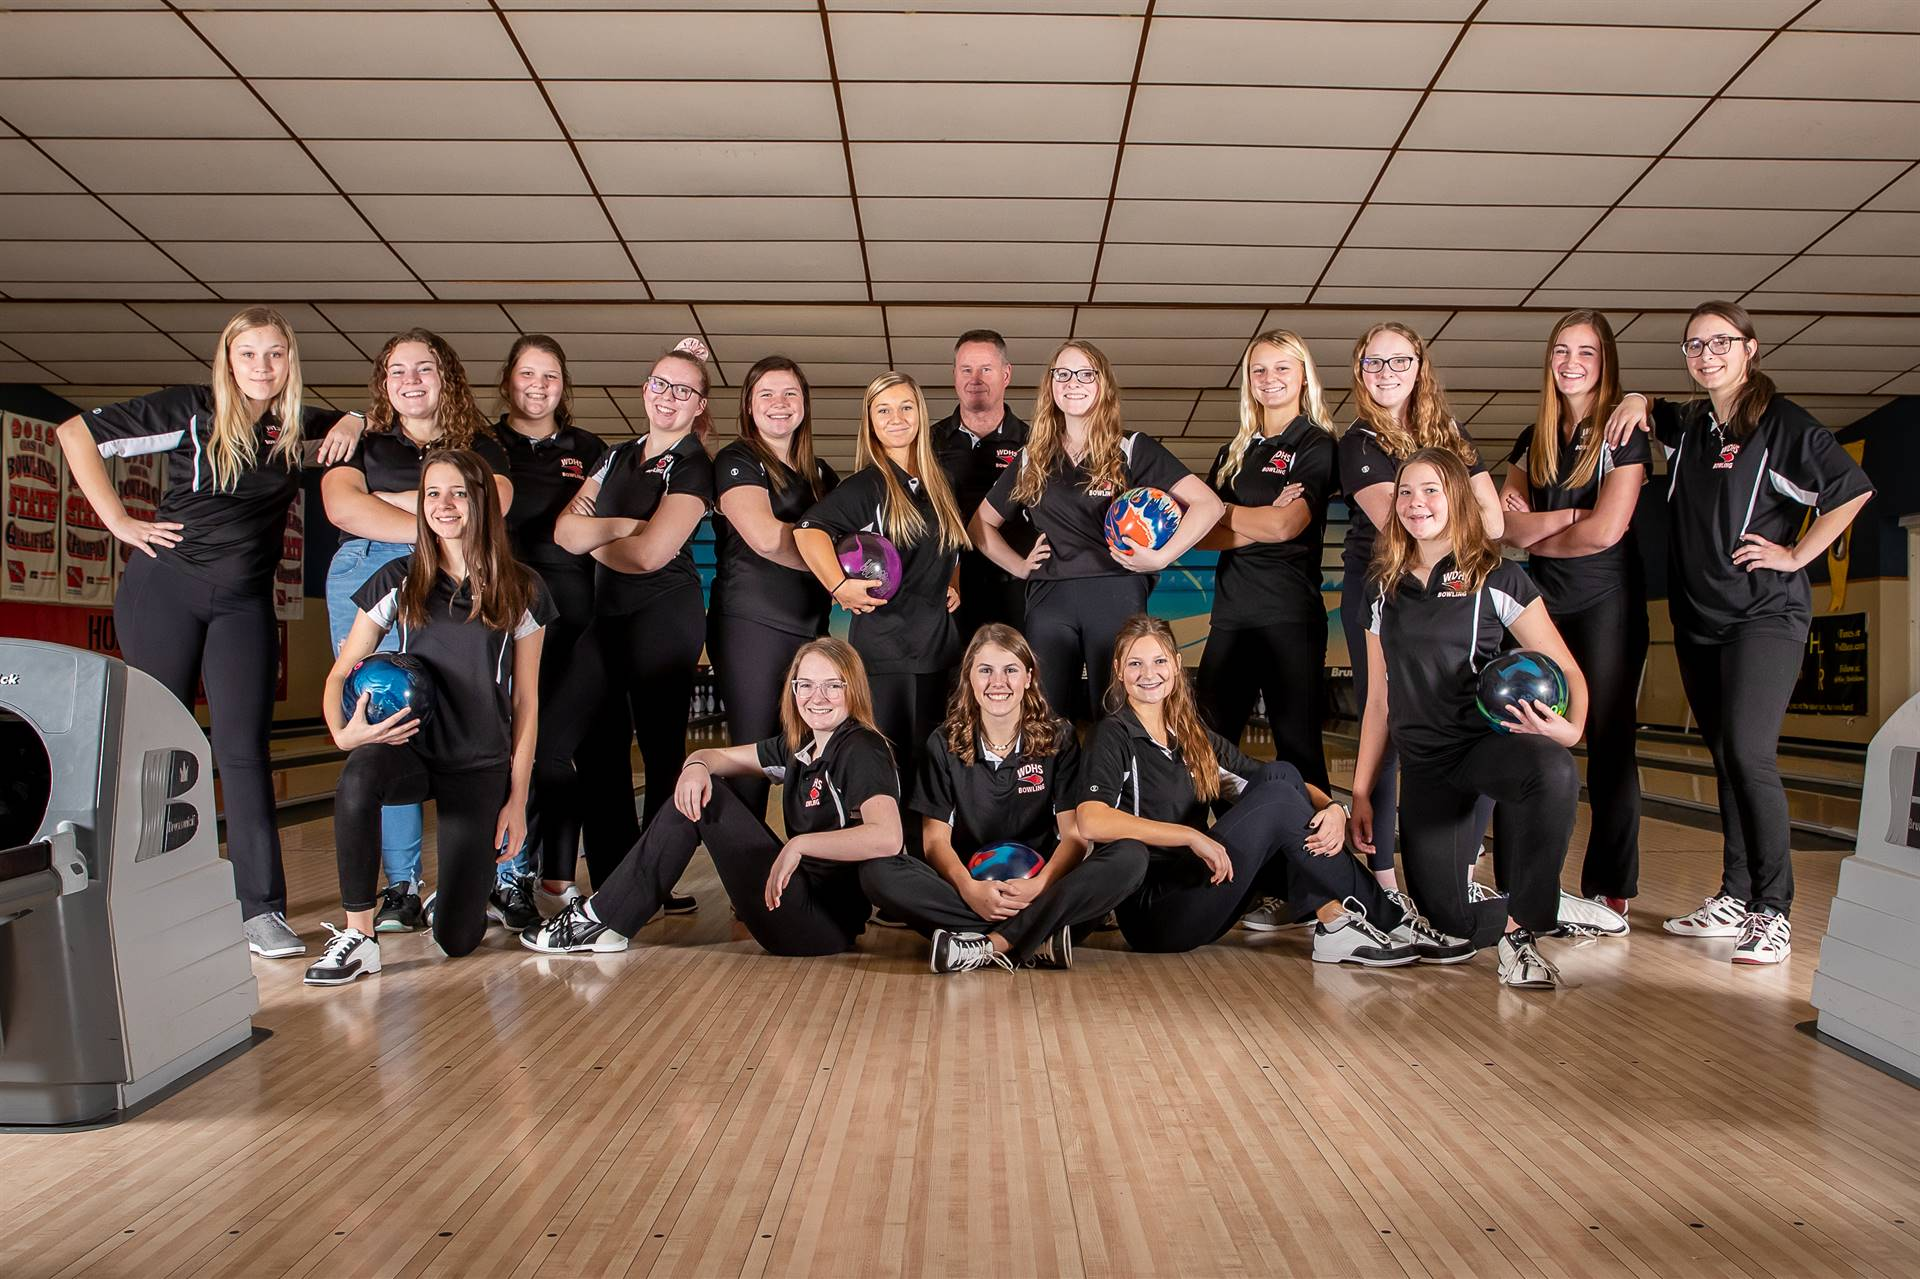 2020-2021 Girls Bowling Team Photo